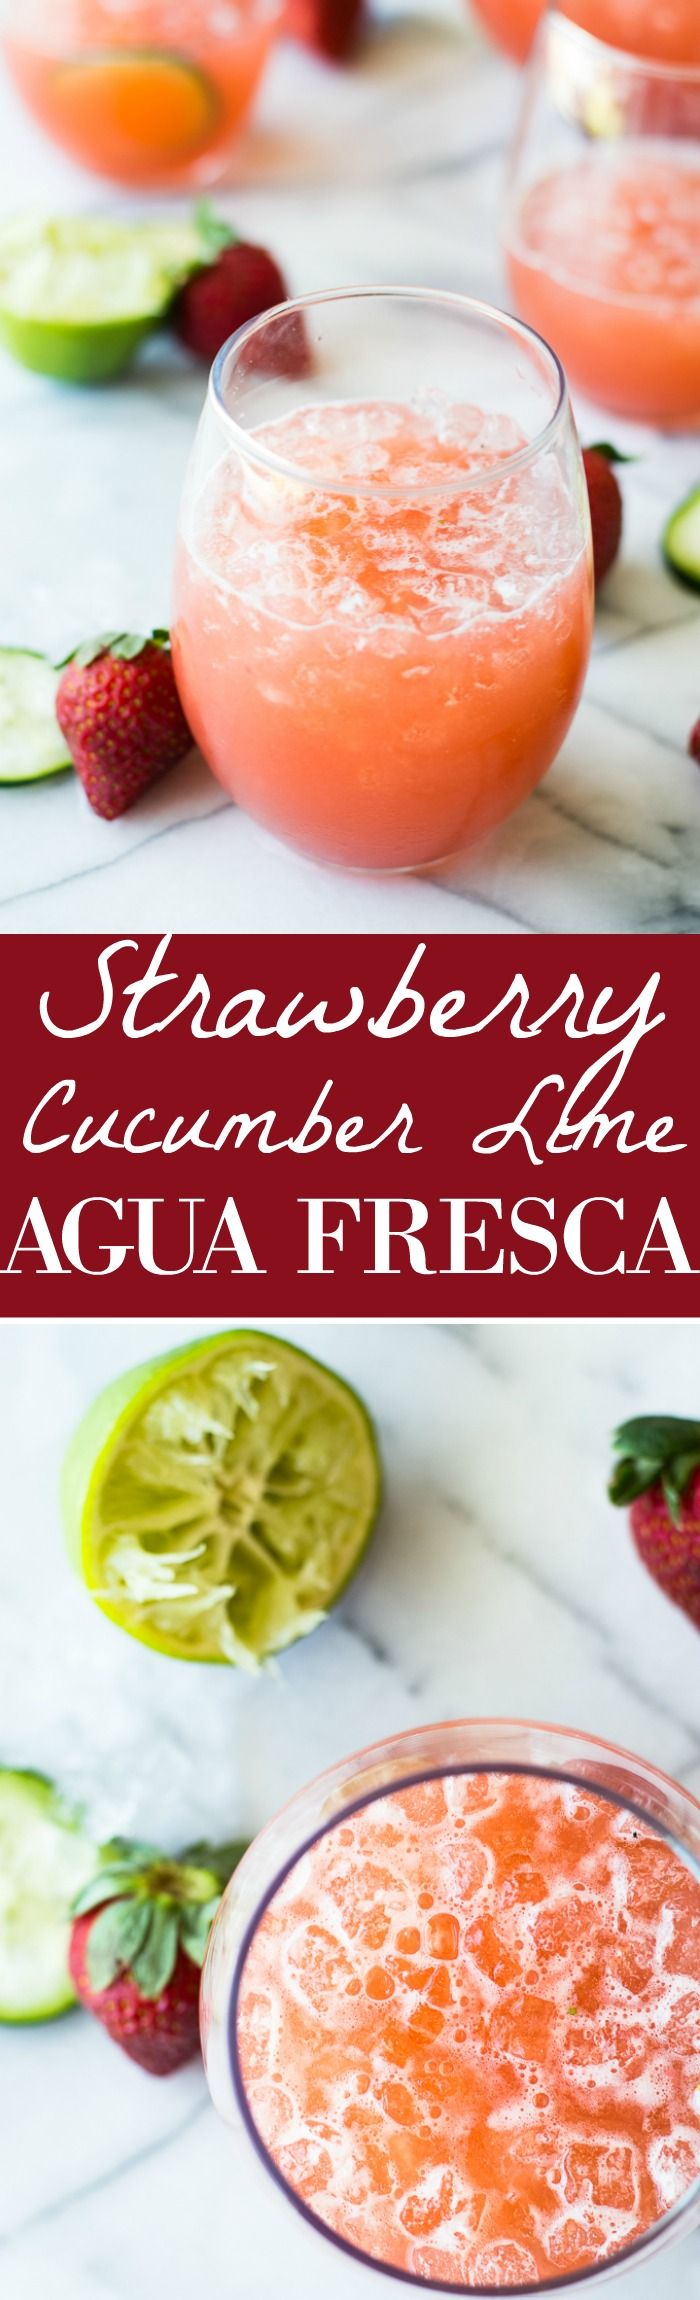 Cool and refreshing Strawberry Cucumber Lime Agua Fresca. This fruit infused water is free of refined sugars and perfect for sipping on hot summer days! Strawberry Cucumber Lime Agua Fresca.